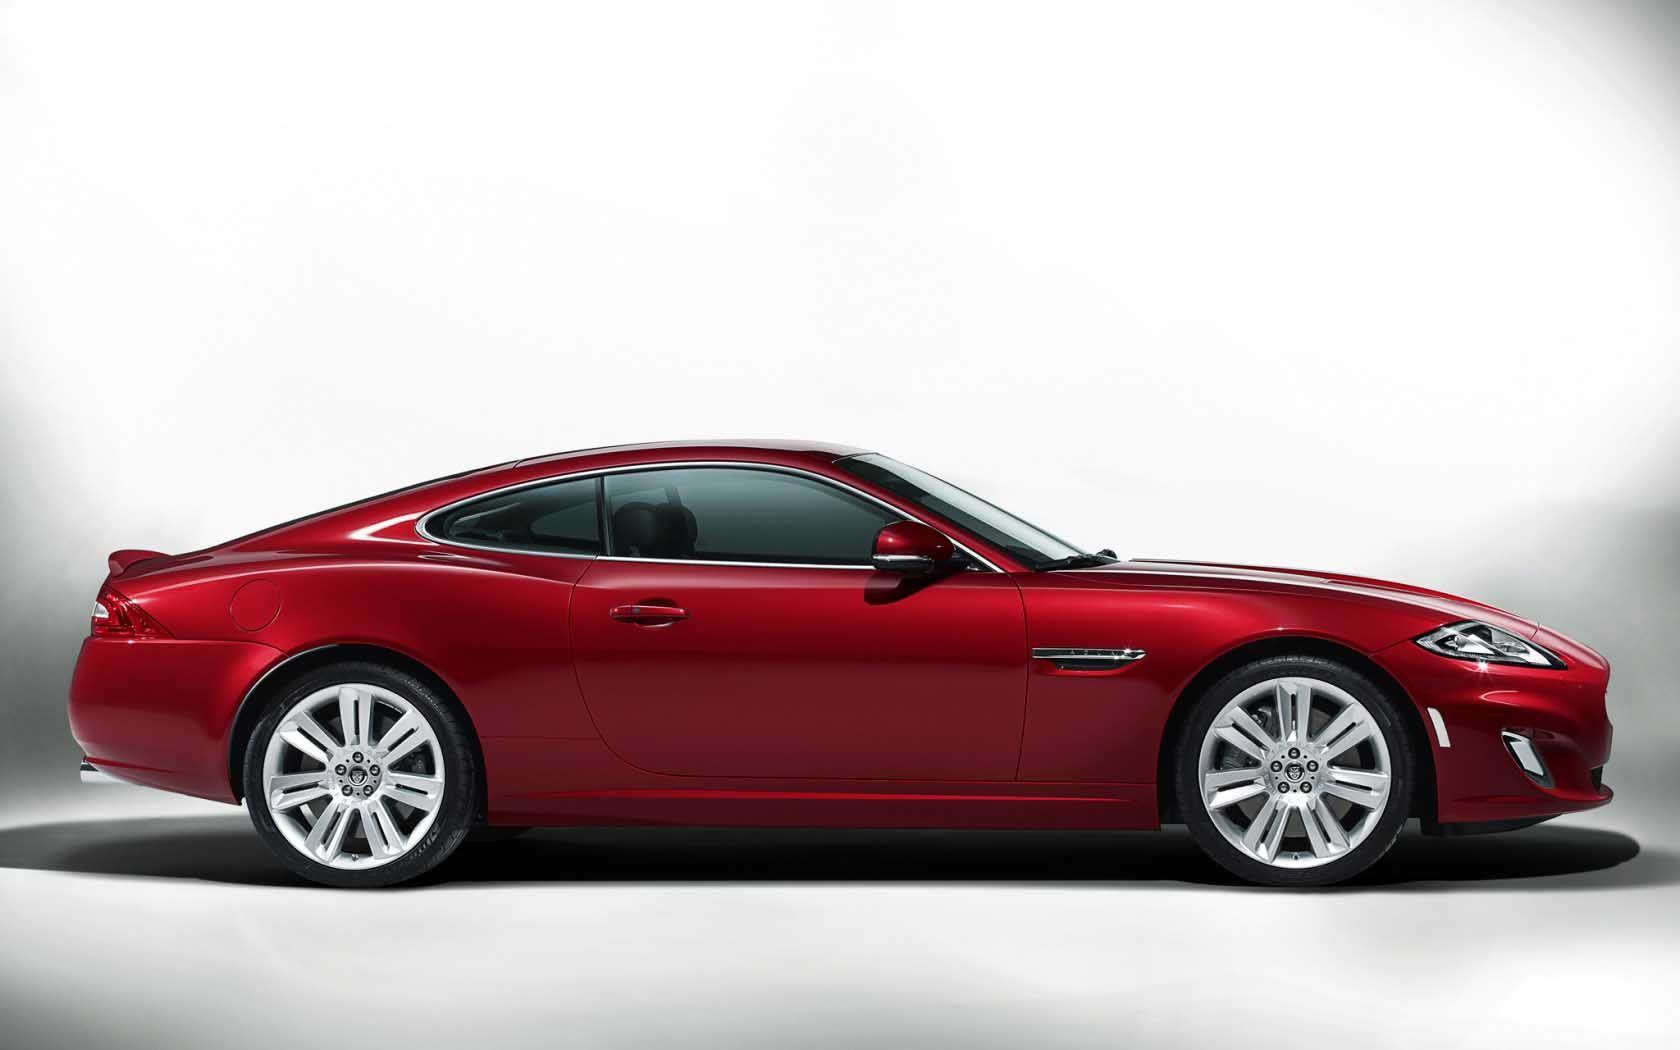 Perfect Red Jaguar Car Wallpaper Widescreen